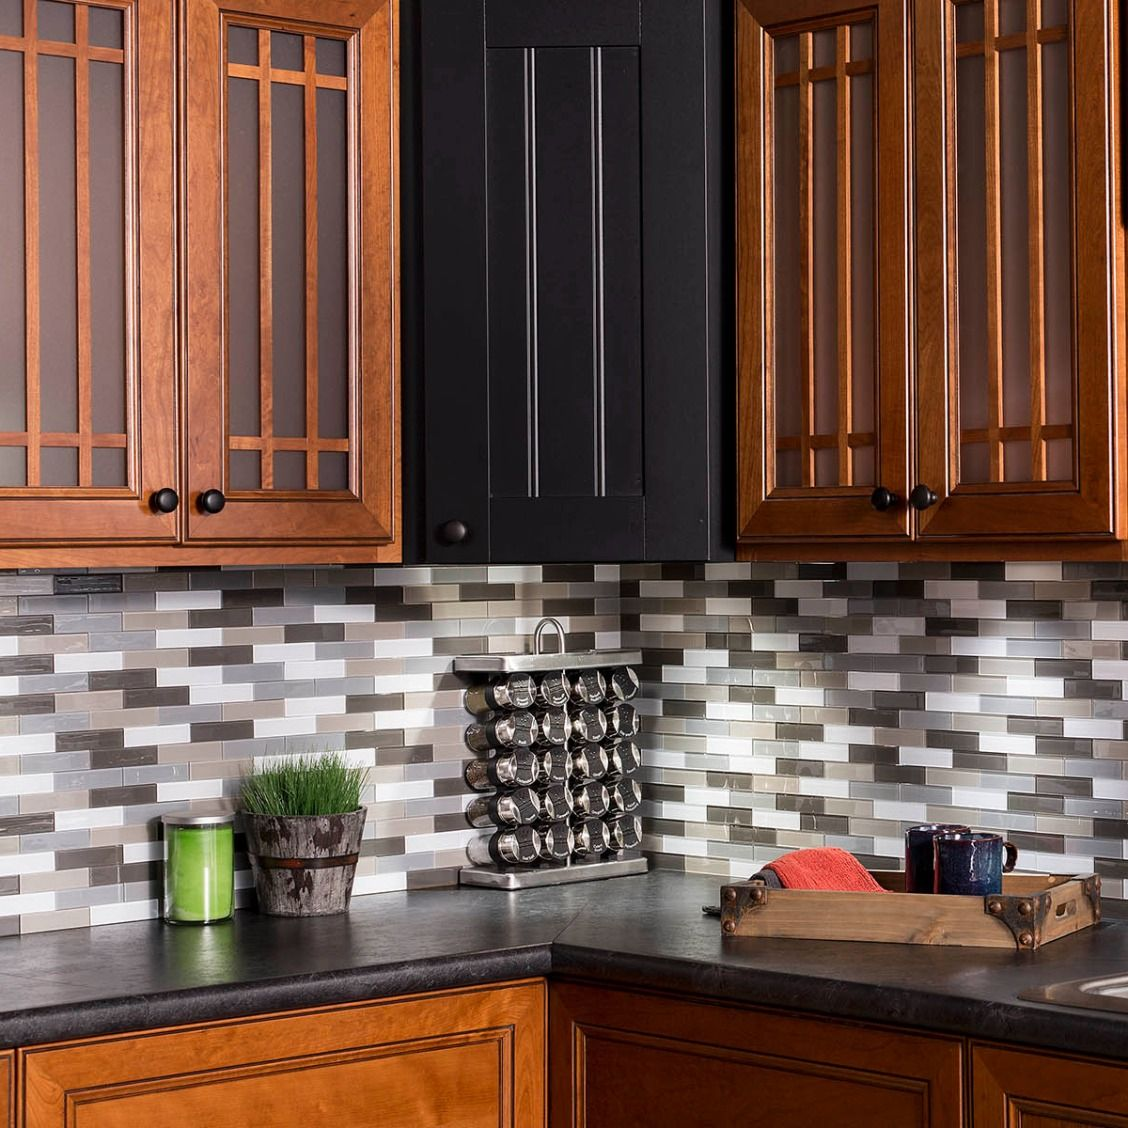 Update your kitchen the DIY way with Aspect 12'' x 4